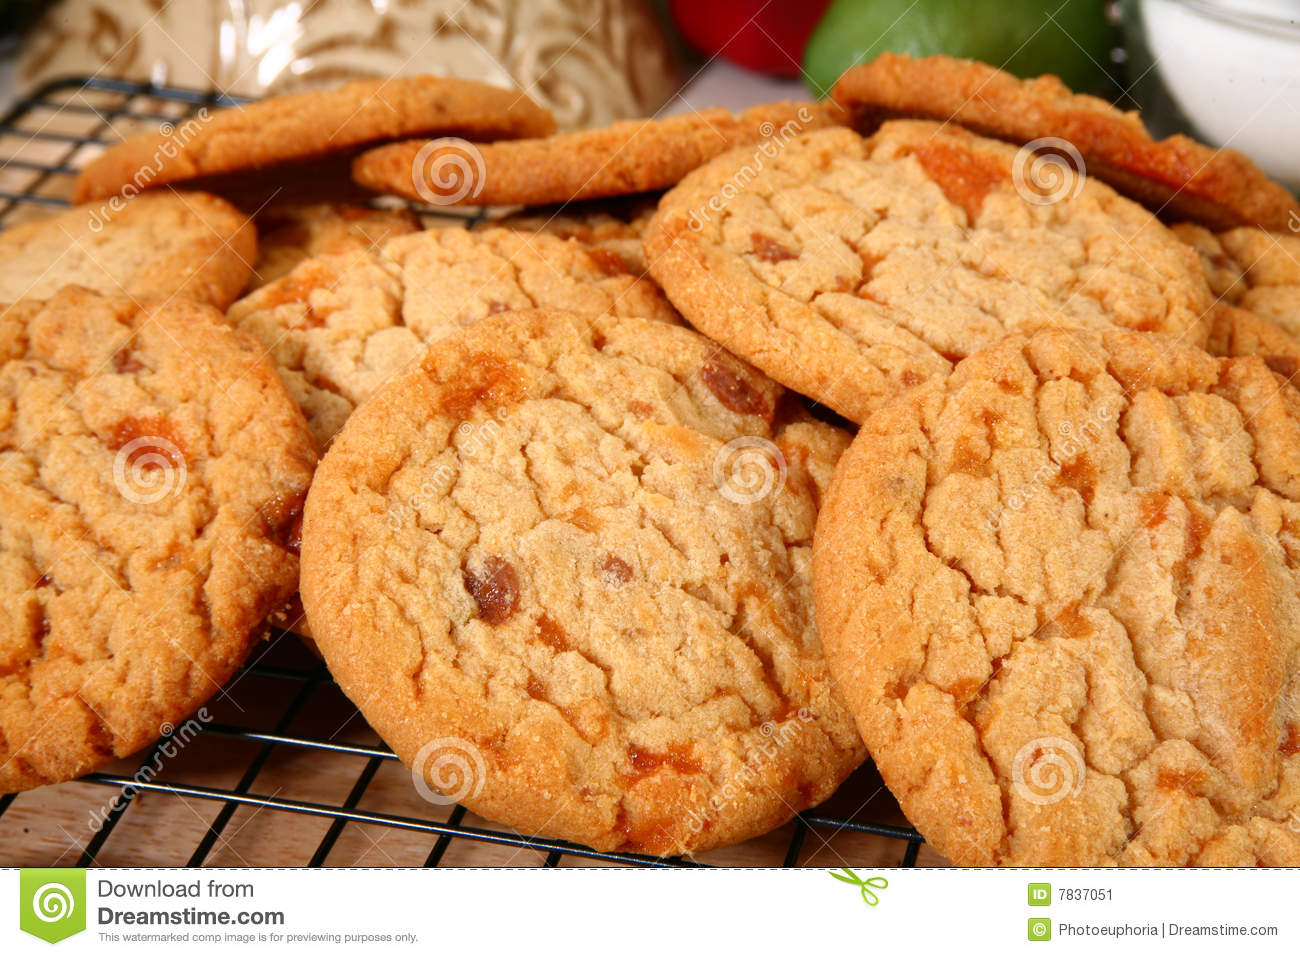 ... flakey, brittle, chocolate covered candy bar baked into the cookies